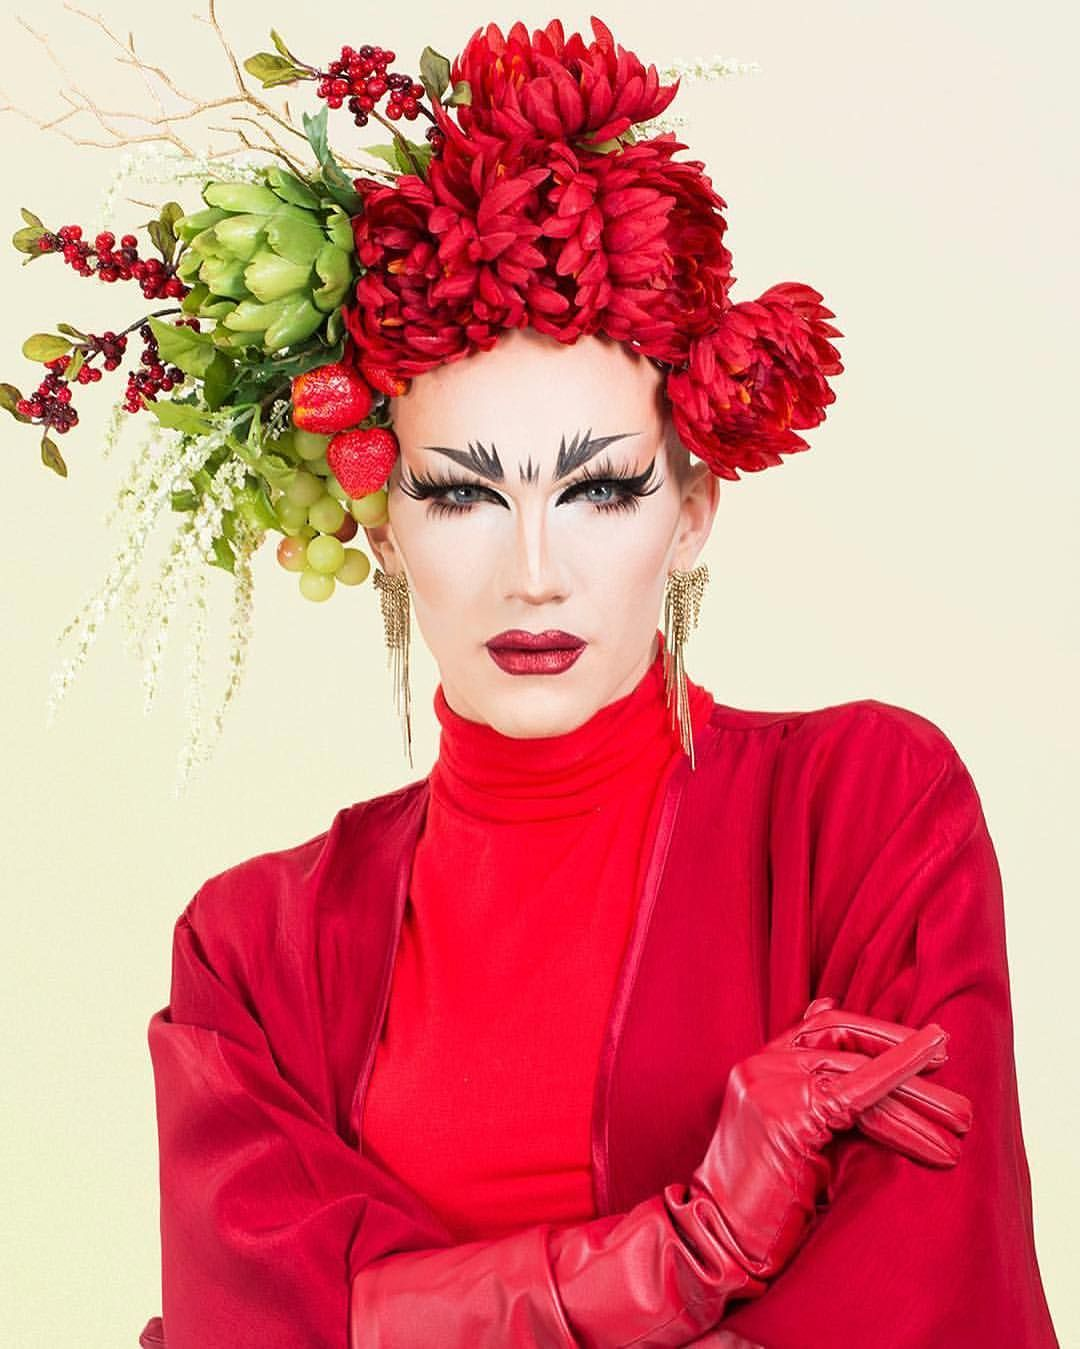 15831f9c9 Sasha Velour   Drag Queen   RuPaul s Drag Race